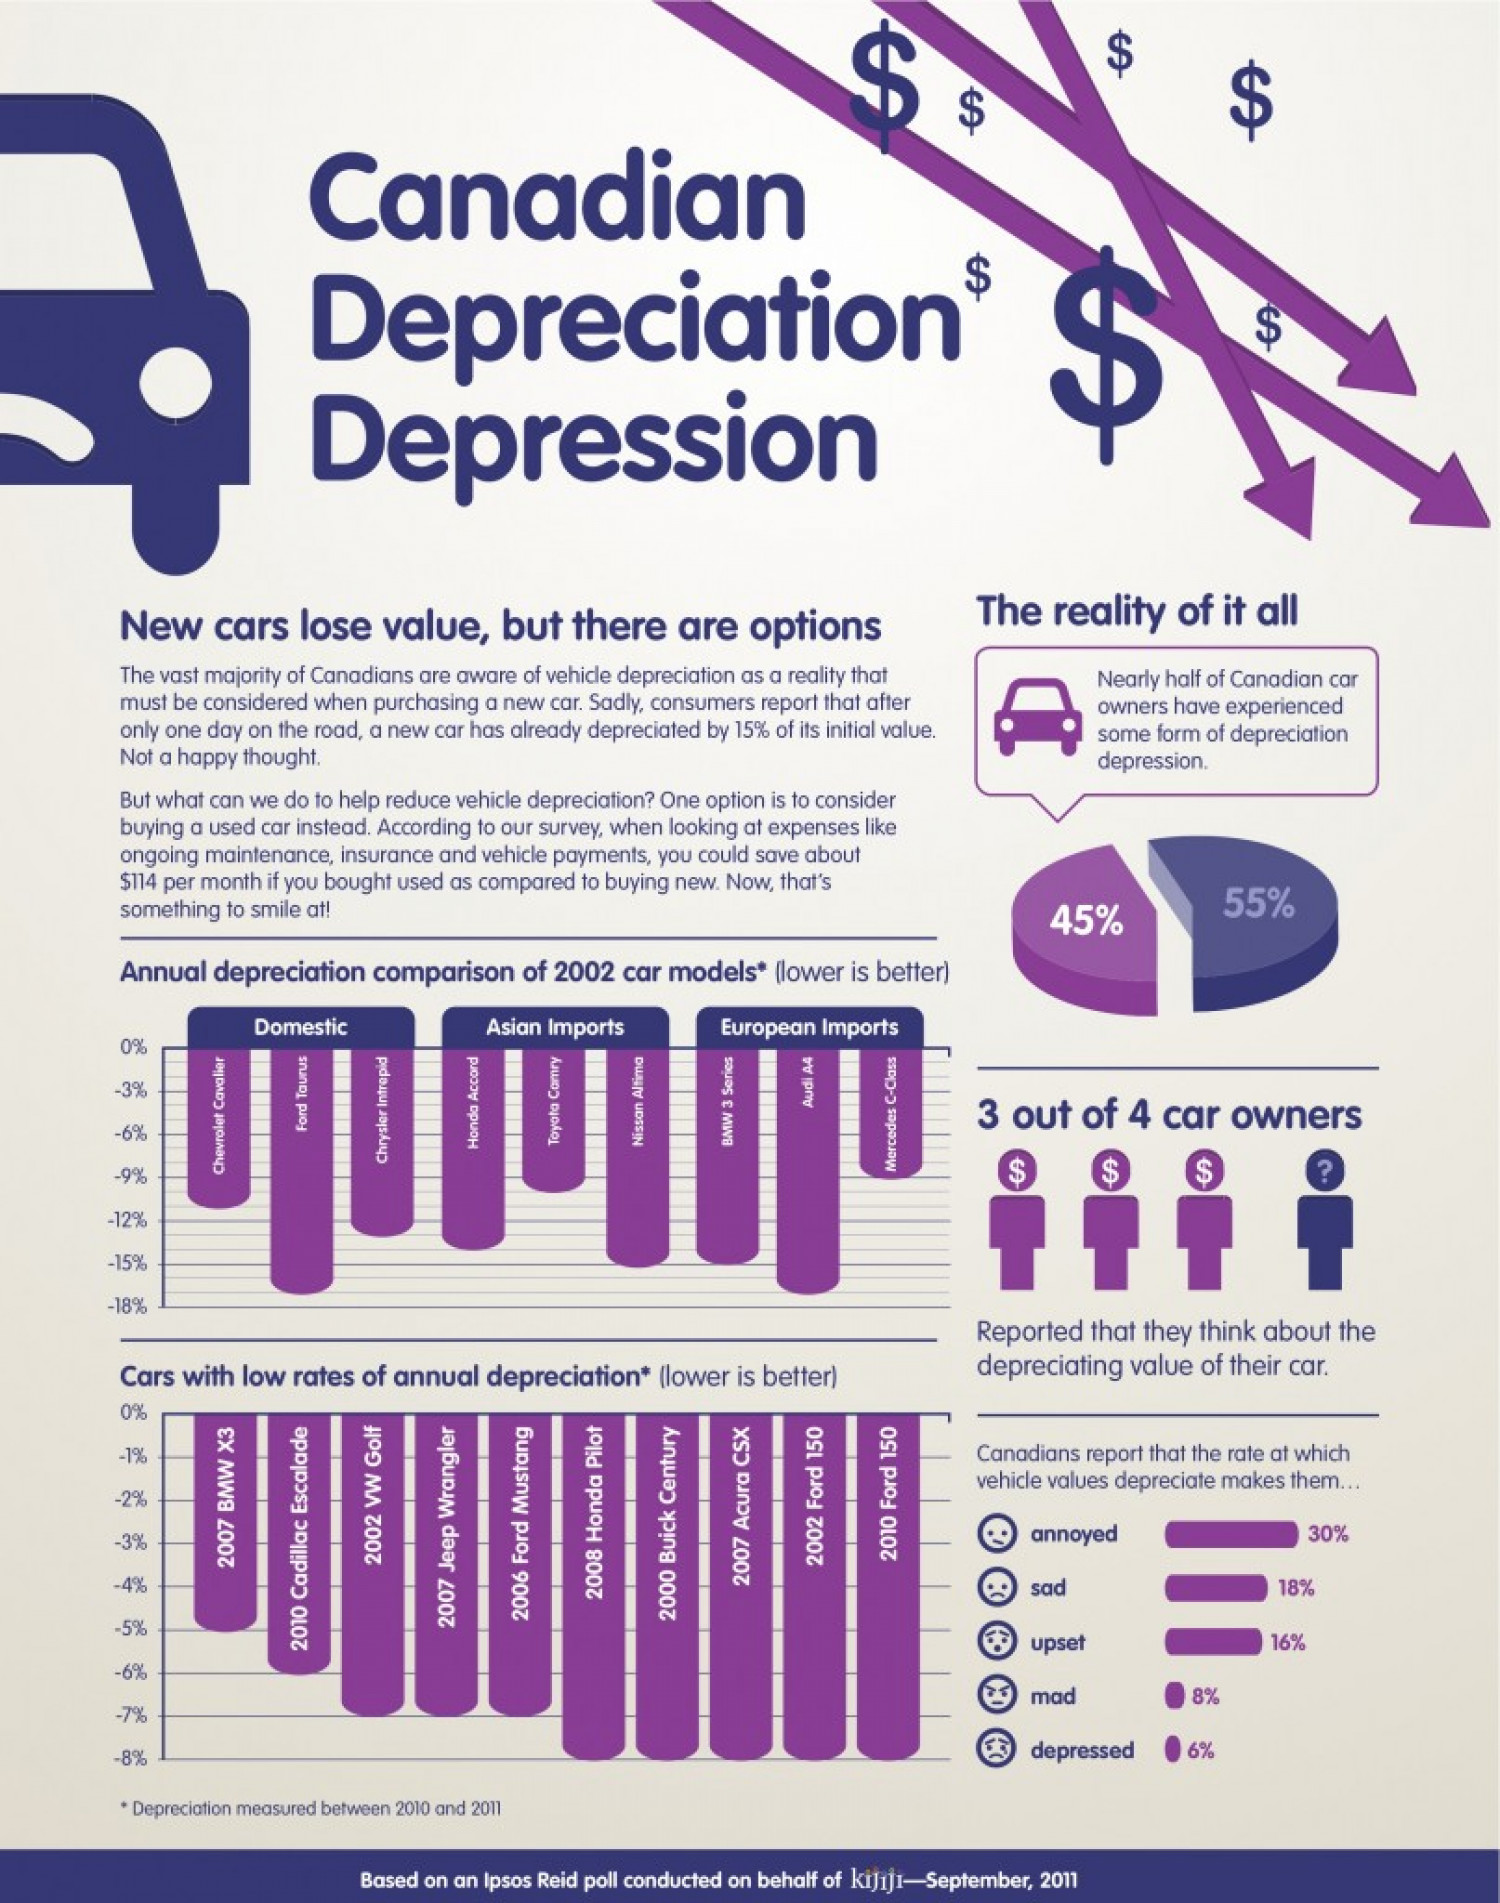 Canadian Depreciation Depression Infographic